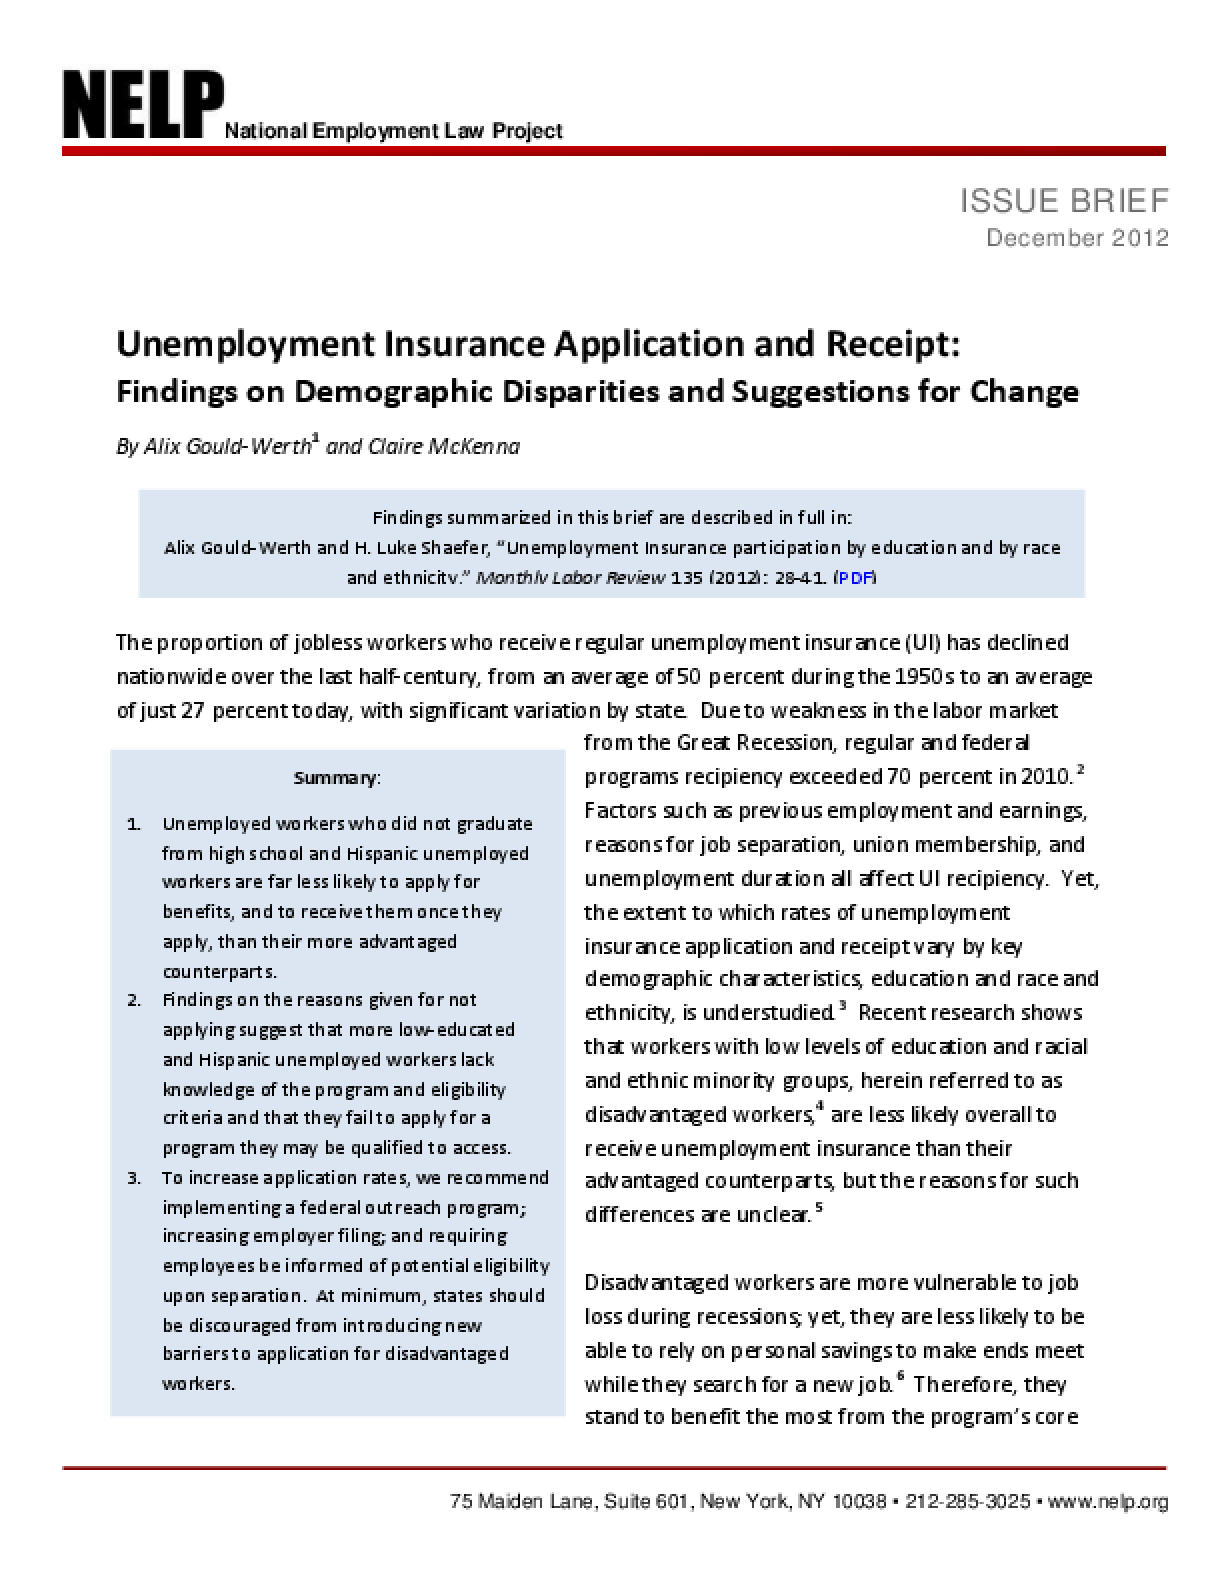 Unemployment Insurance Application and Receipt: Findings on Demographic Disparities and Suggestions for Change